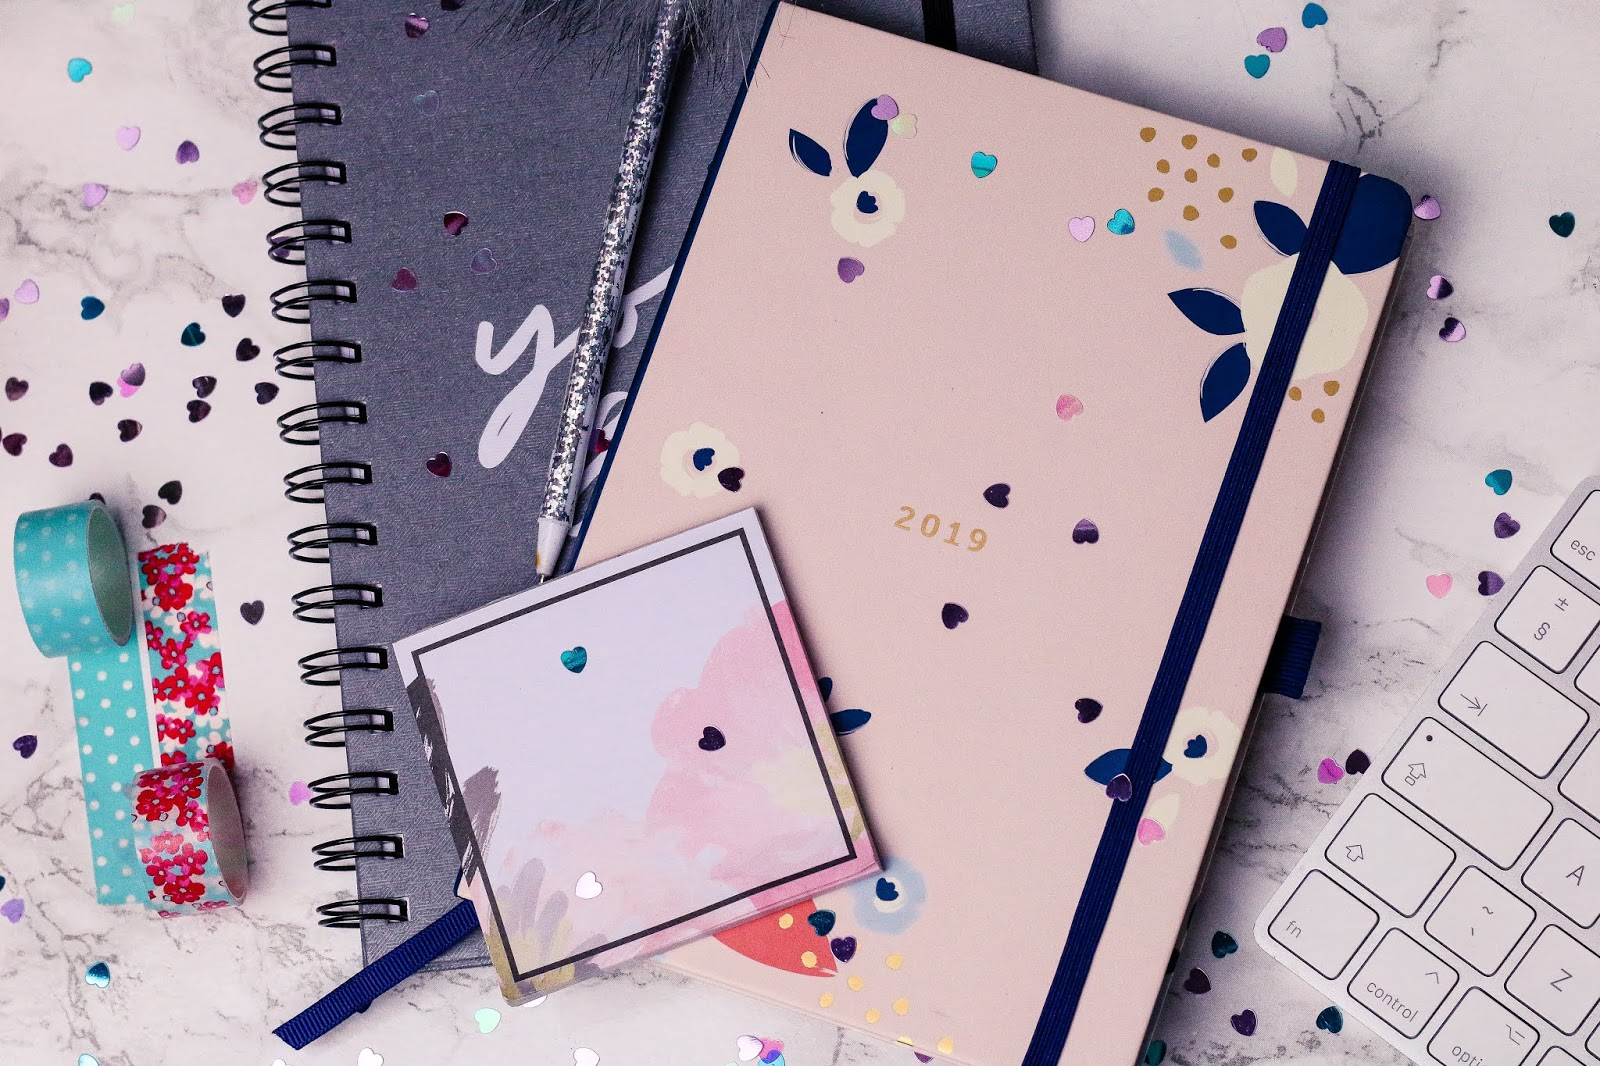 flaylay photo of a 2019 diary and a notebook on a desk with washi tape and a pen